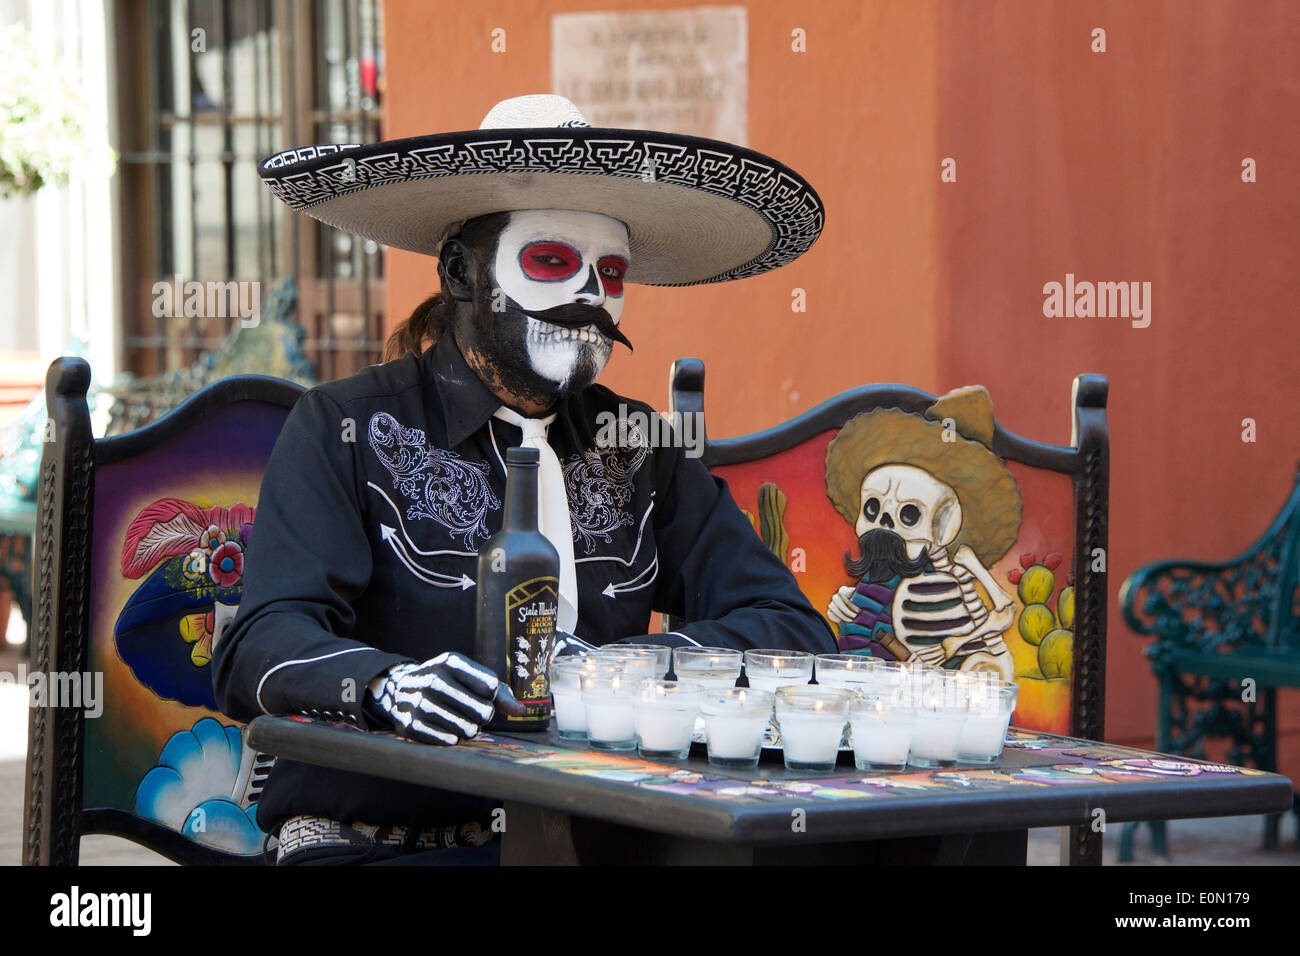 Man dressed as Day of the Dead skeleton Guanajuato Mexico - Stock Image